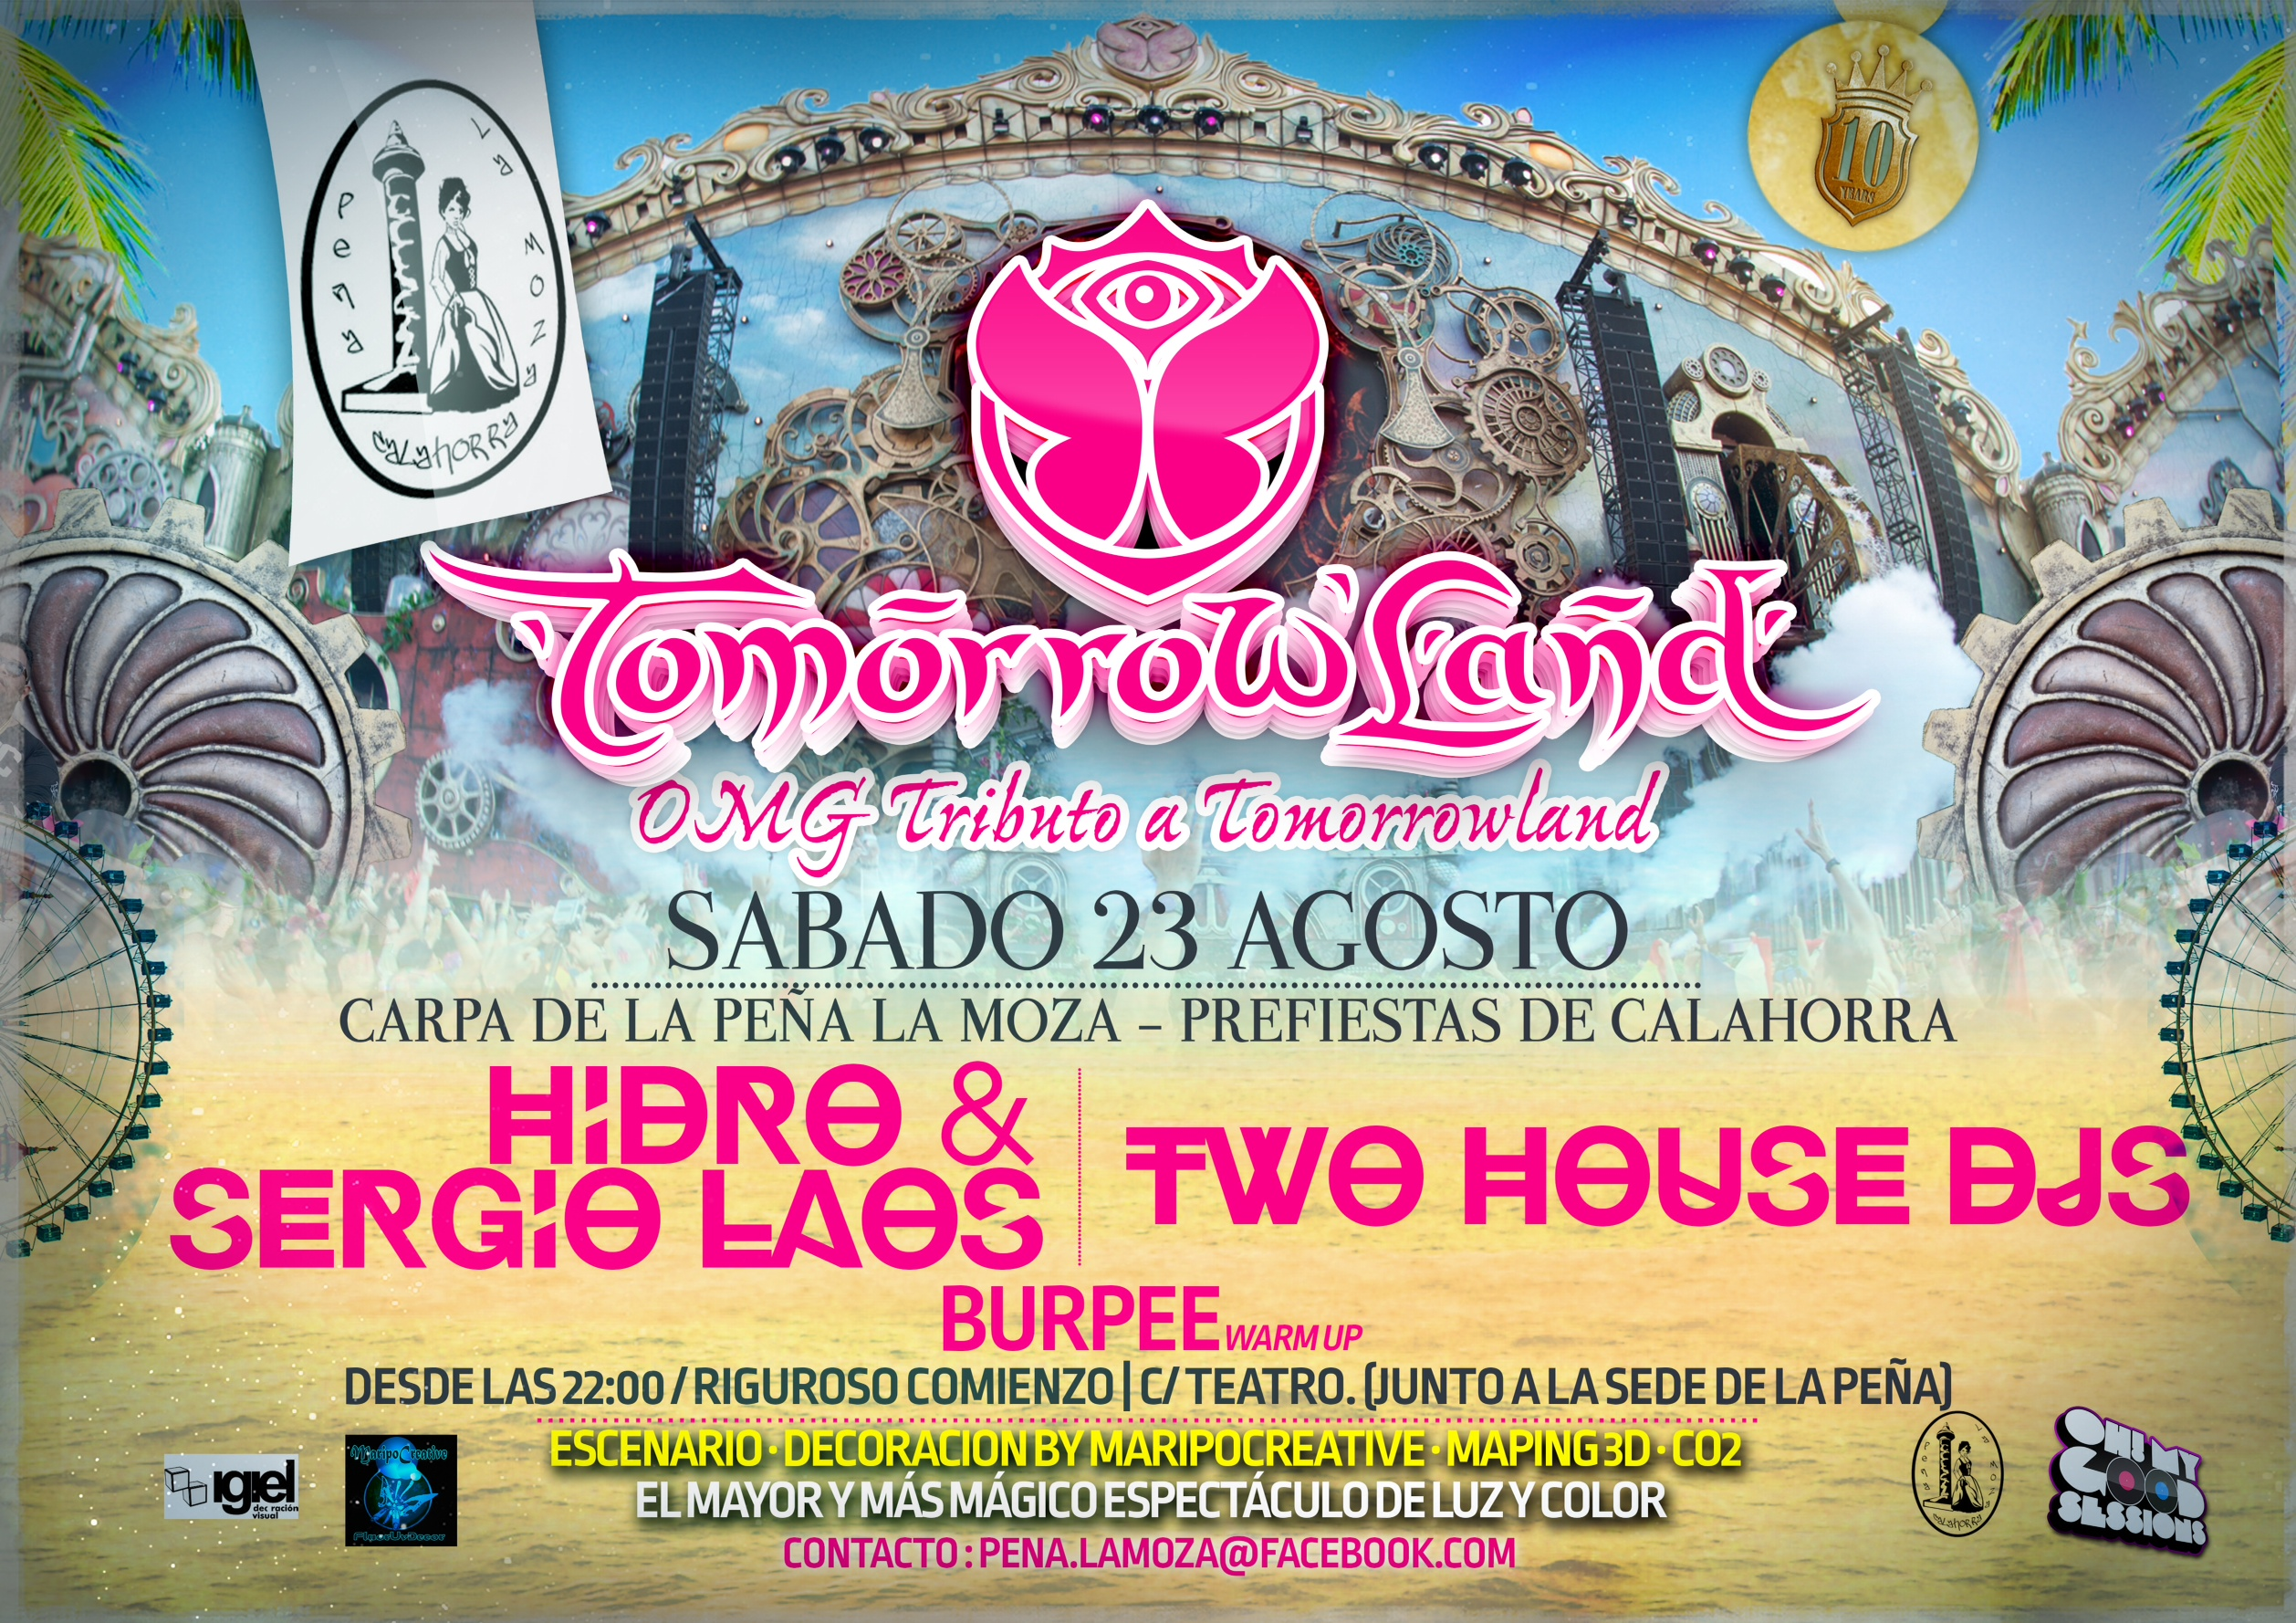 Tomorrowland Peña la moza & Maripocreative